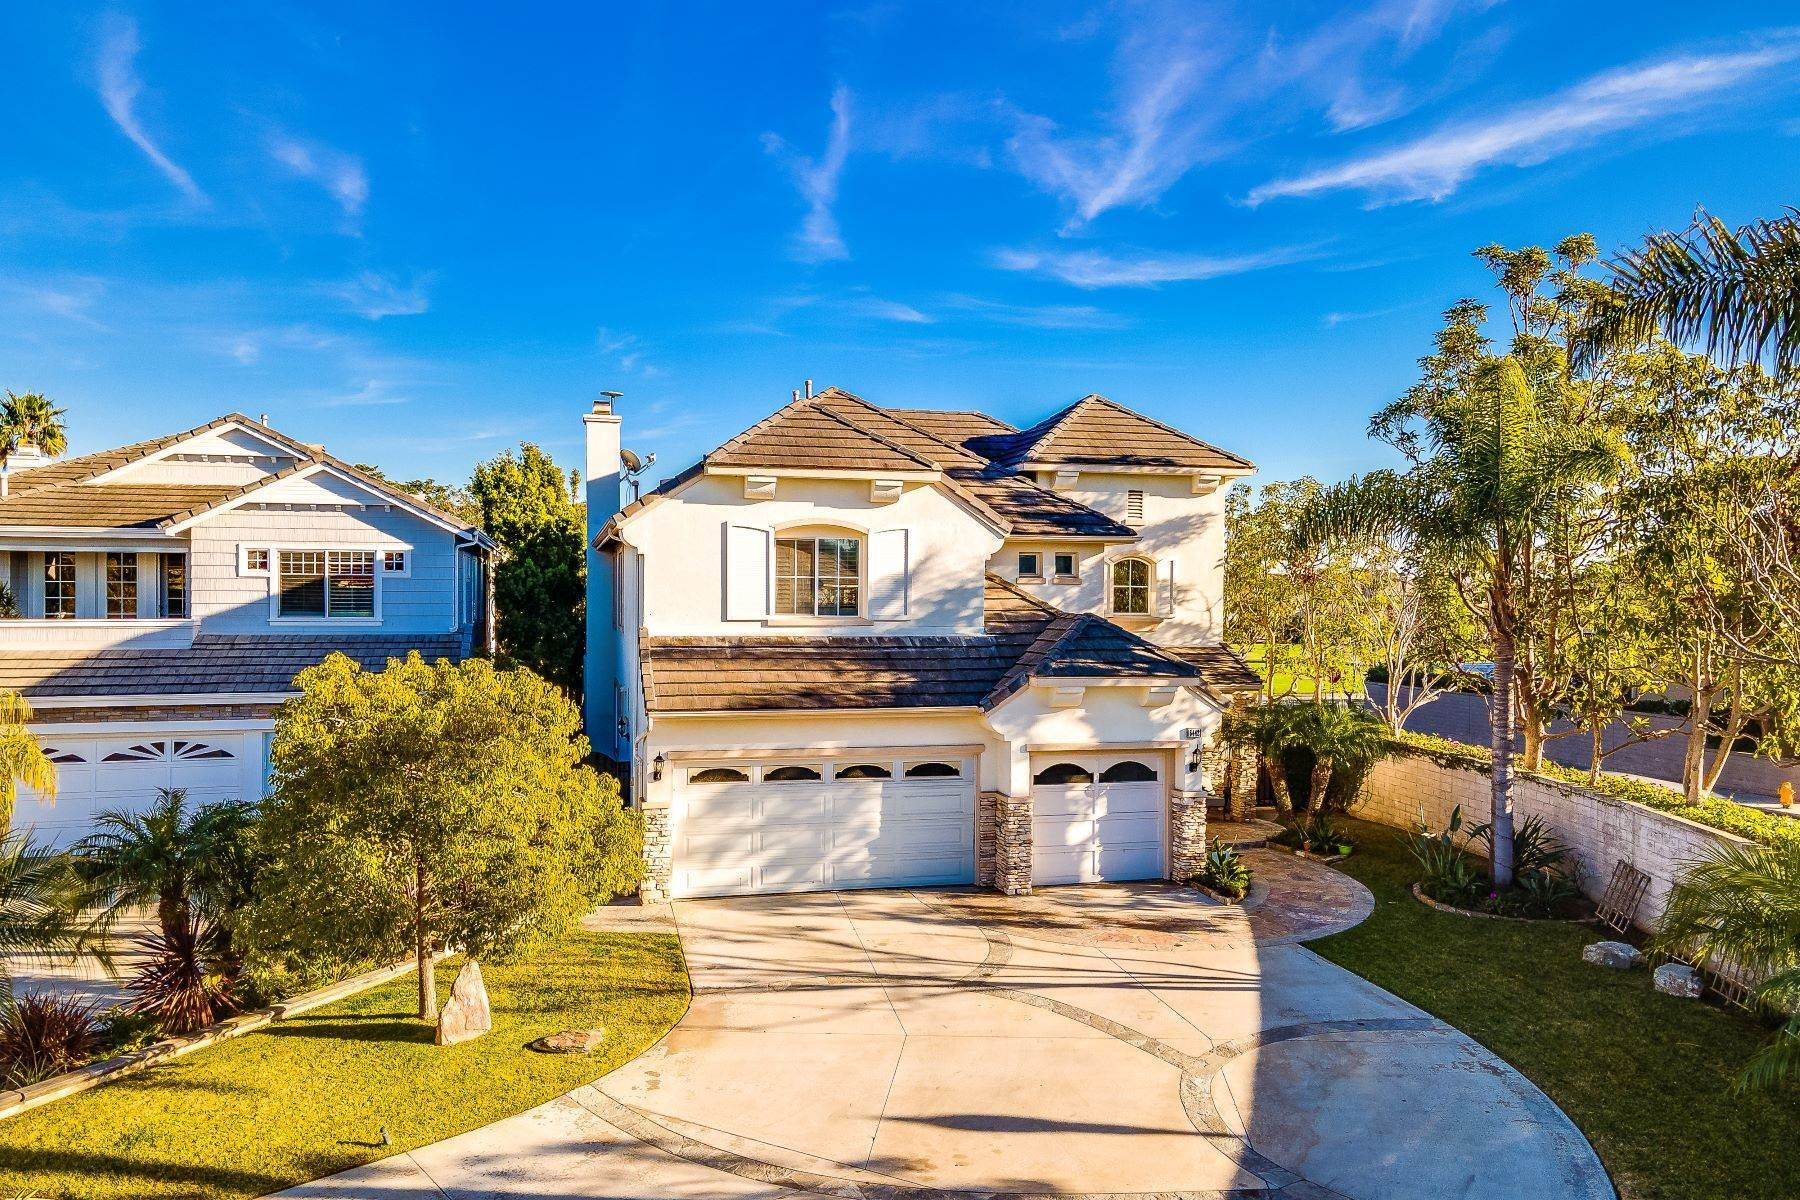 Single Family Homes for Sale at 6442 Garland Circle Huntington Beach, California 92648 United States